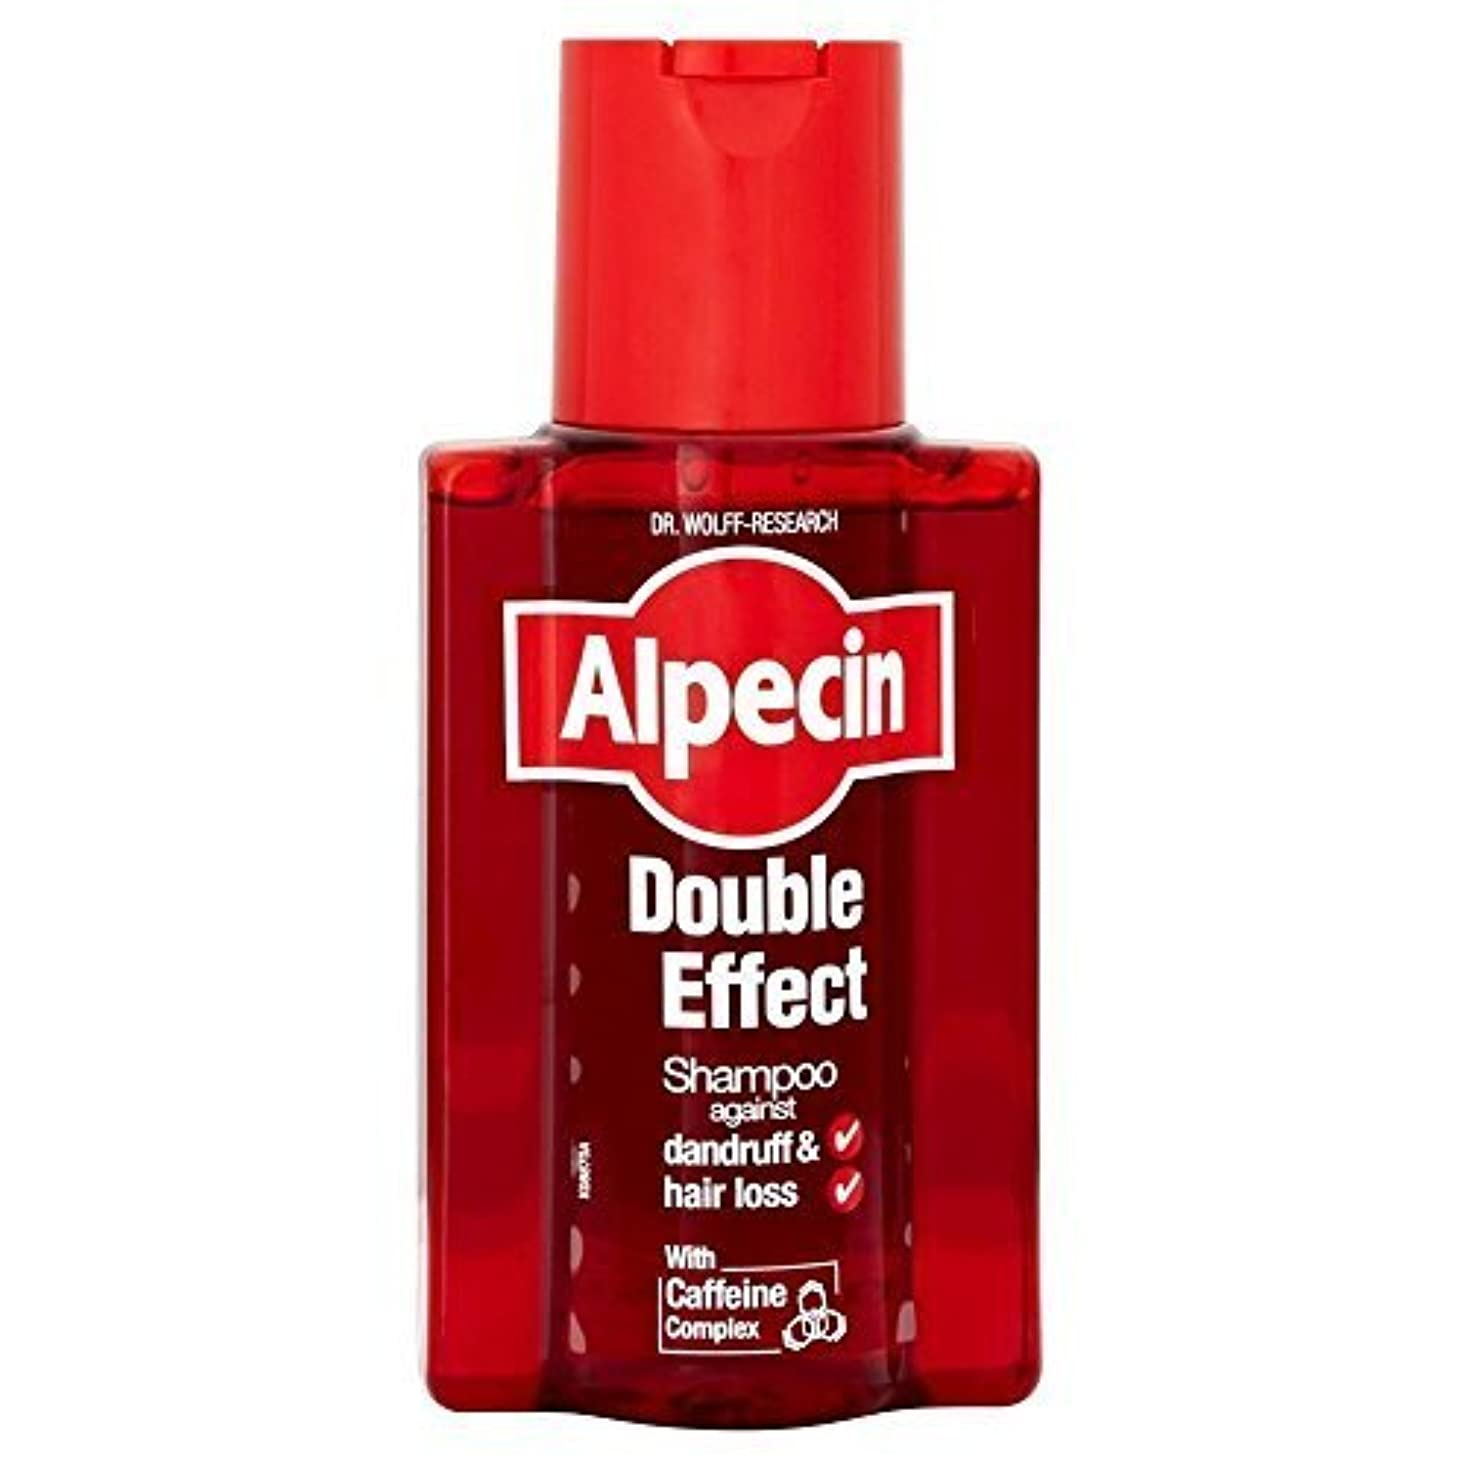 半導体力学擁するAlpecin Double Effect Shampoo (200ml) by Grocery [並行輸入品]